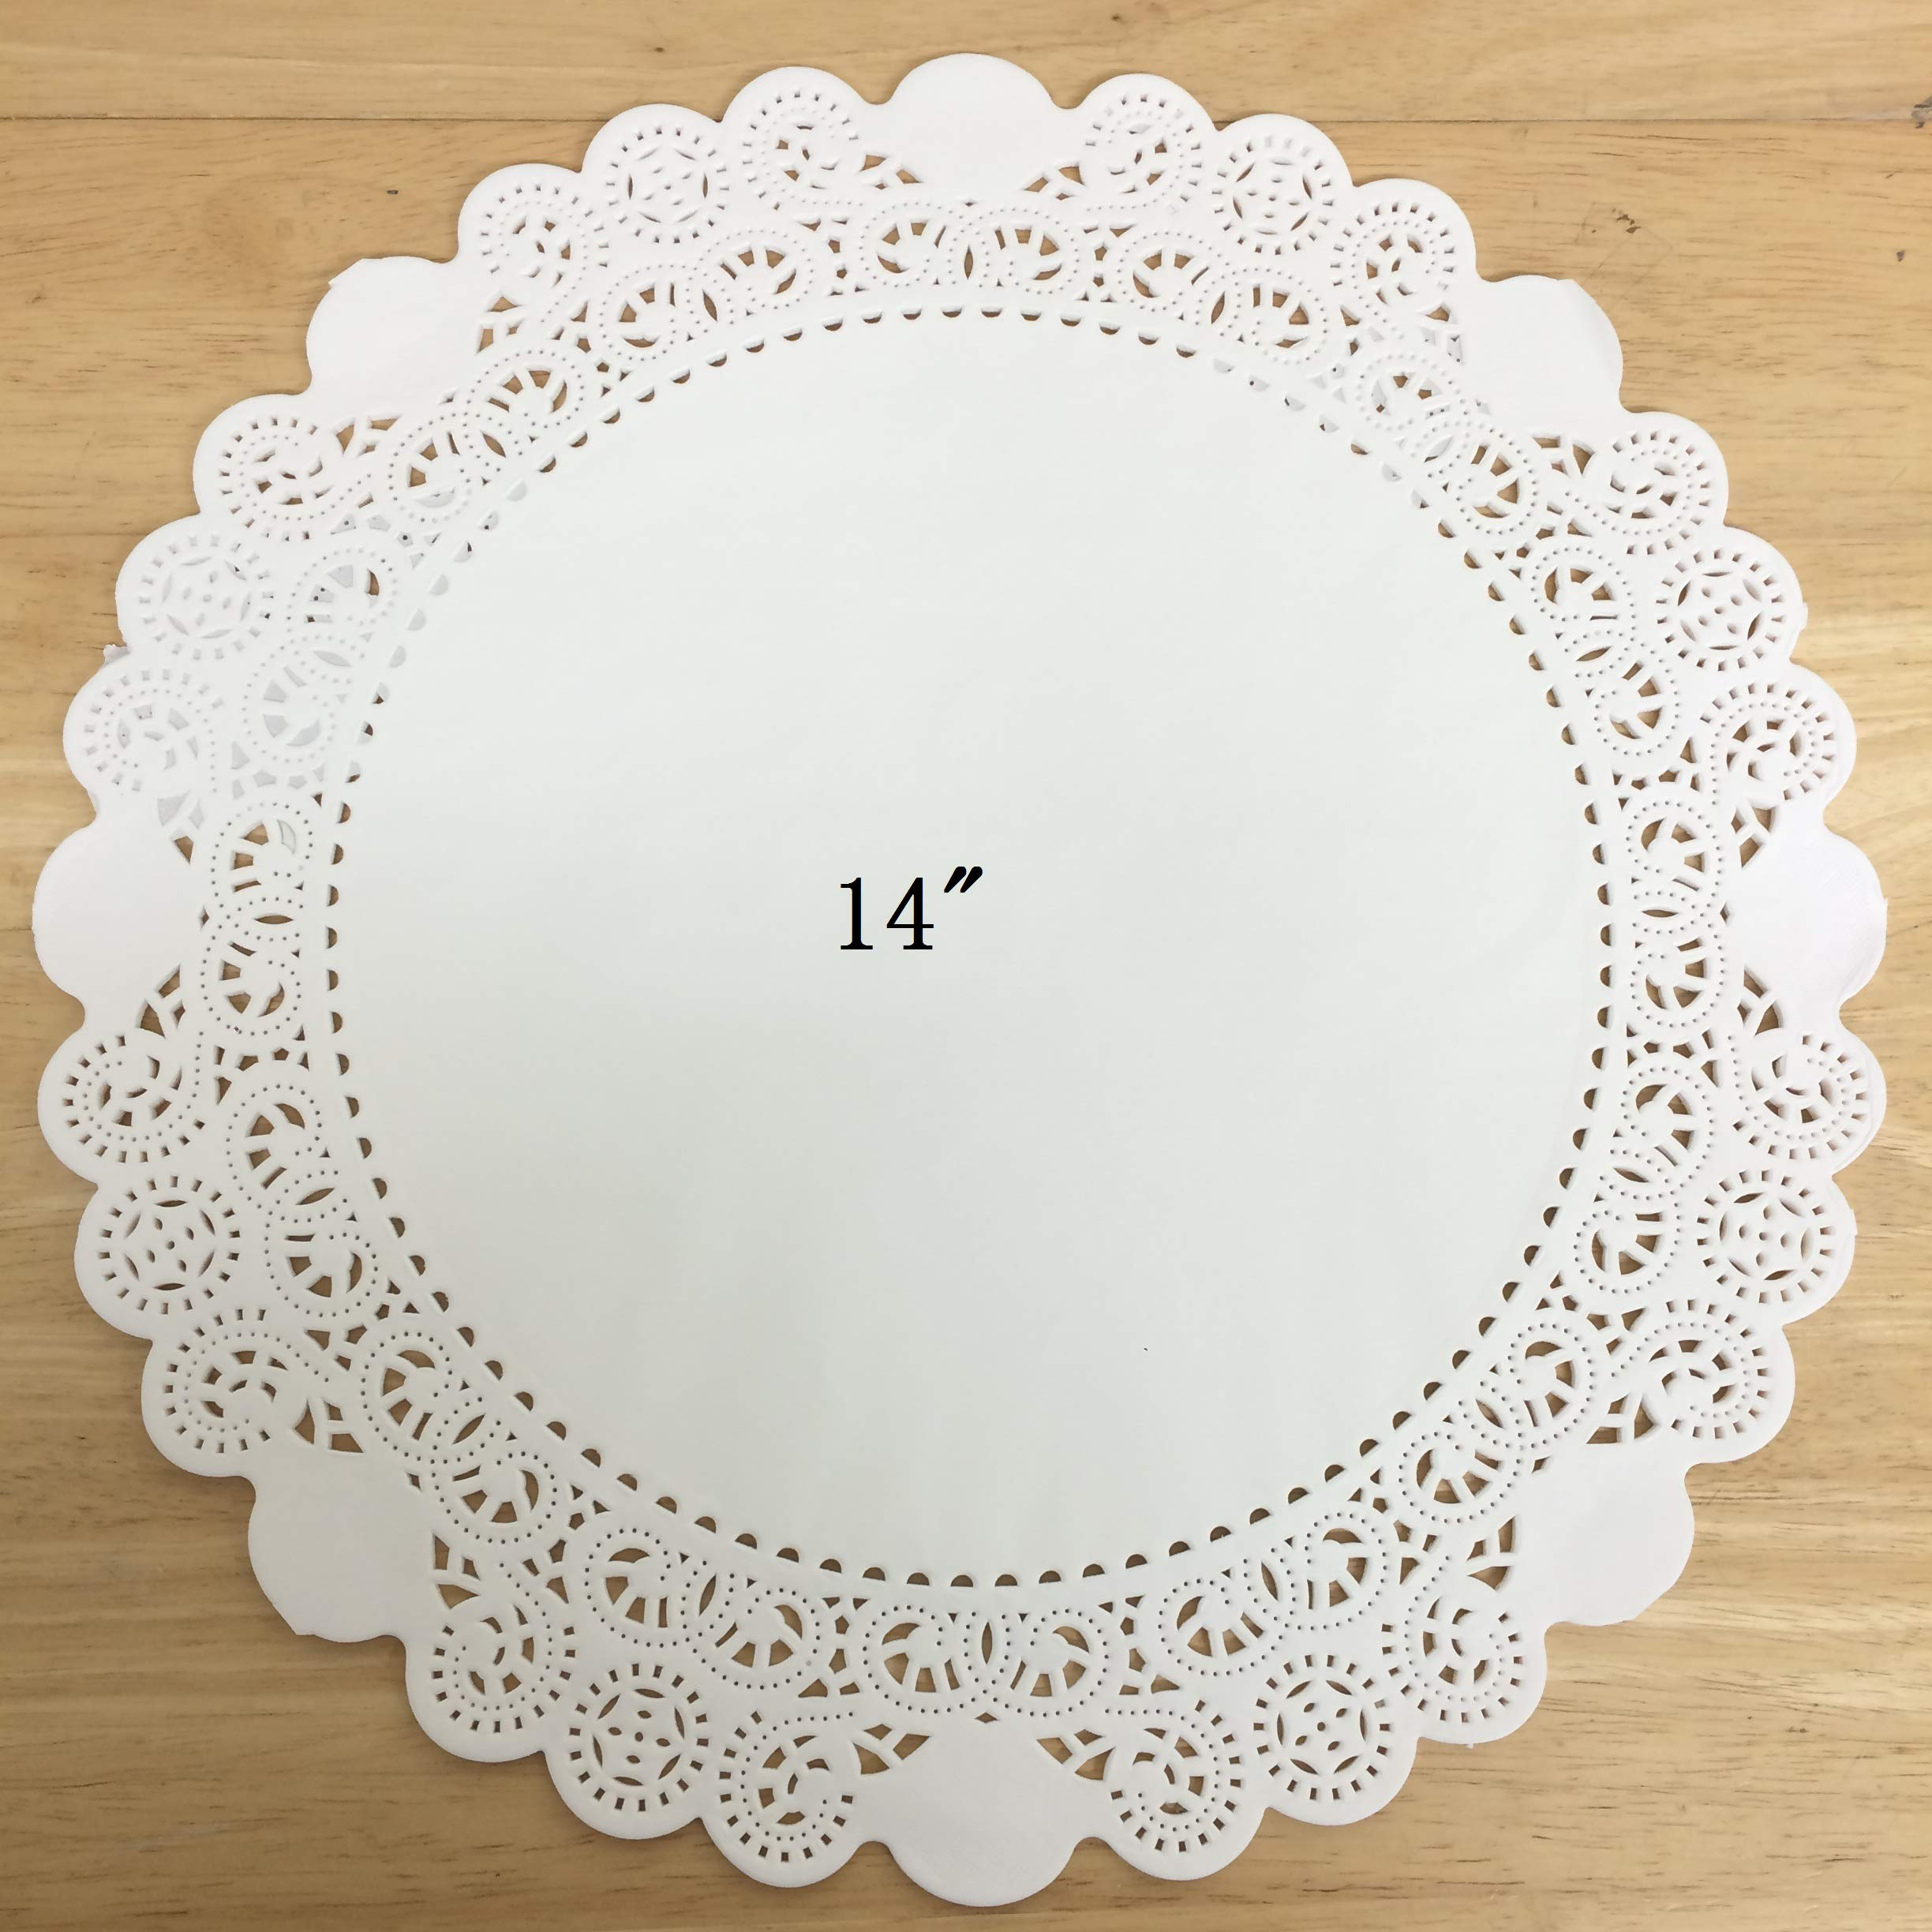 PEPPERLONELY 25 PC White Round Greaseproof Paper Doilies, 14 Inch